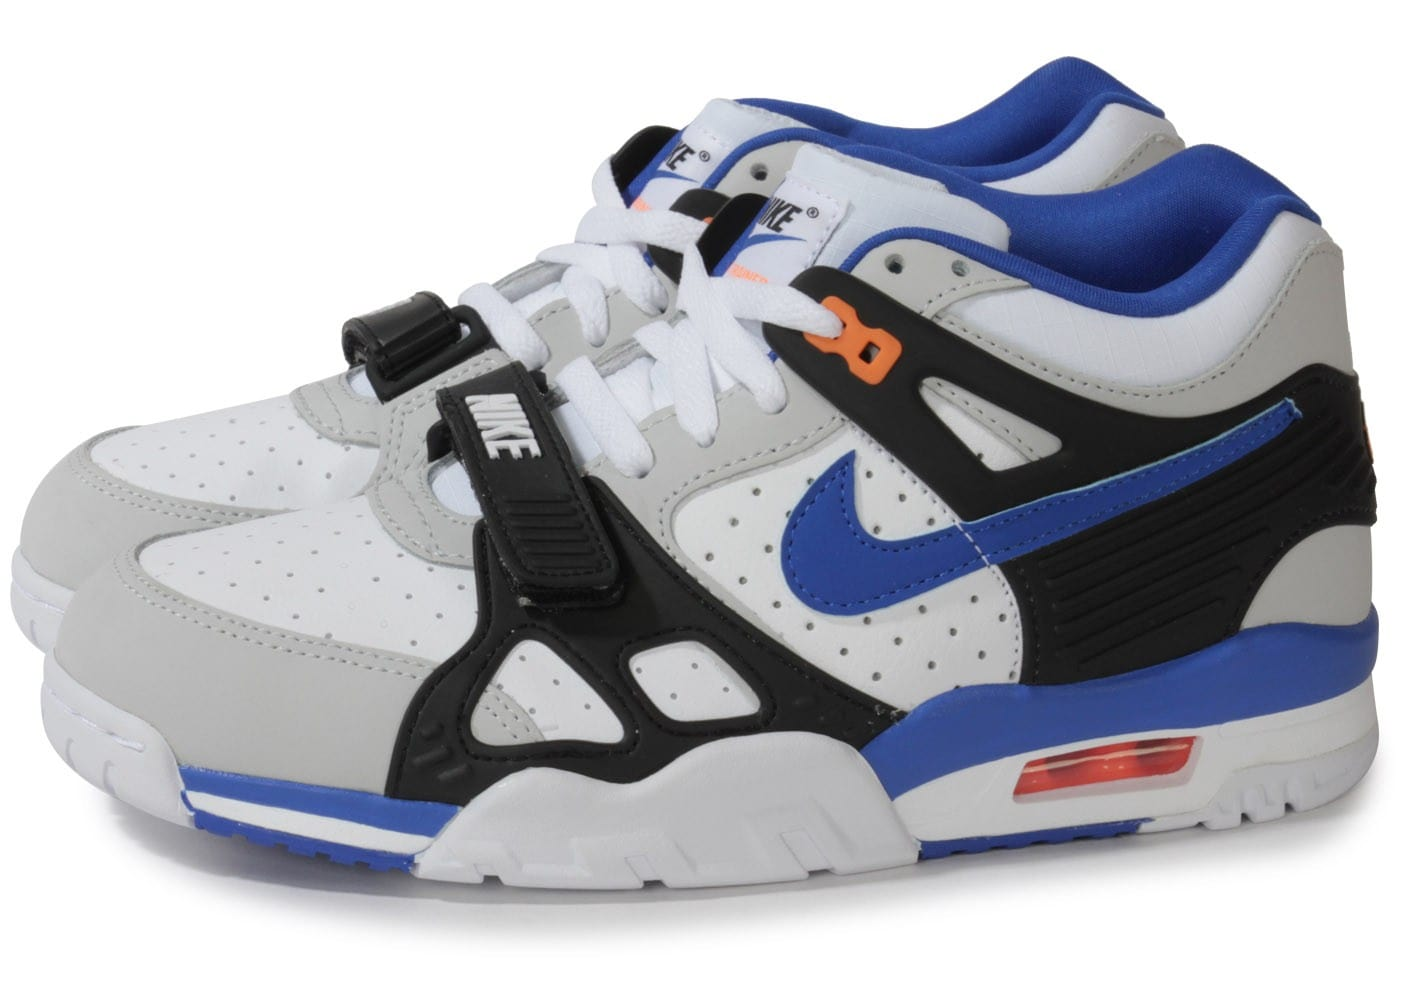 Nike Air Trainer 3 Auburn Chaussures Baskets homme Chausport